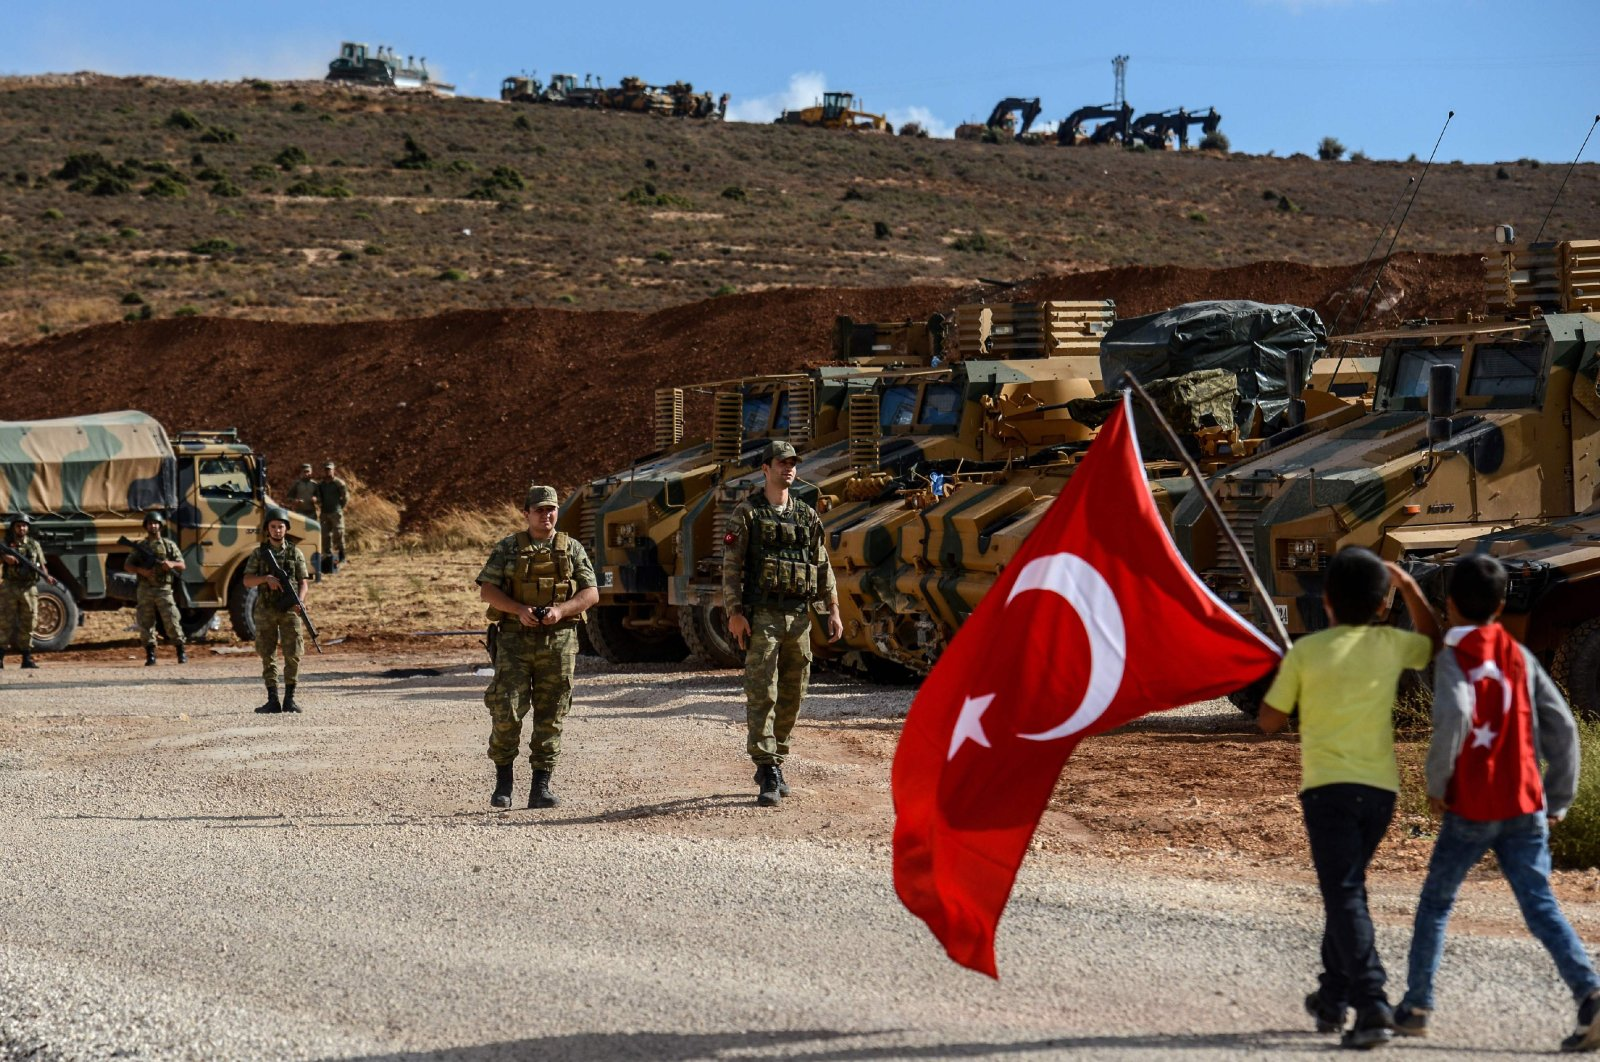 Turkish soldiers stand near armored vehicles as two young boys holding Turkish national flags arrive during a demonstration in support of the Turkish army's Idlib operation near the Turkey-Syria border near Reyhanli, Hatay, Oct. 10, 2017. (AFP photo)